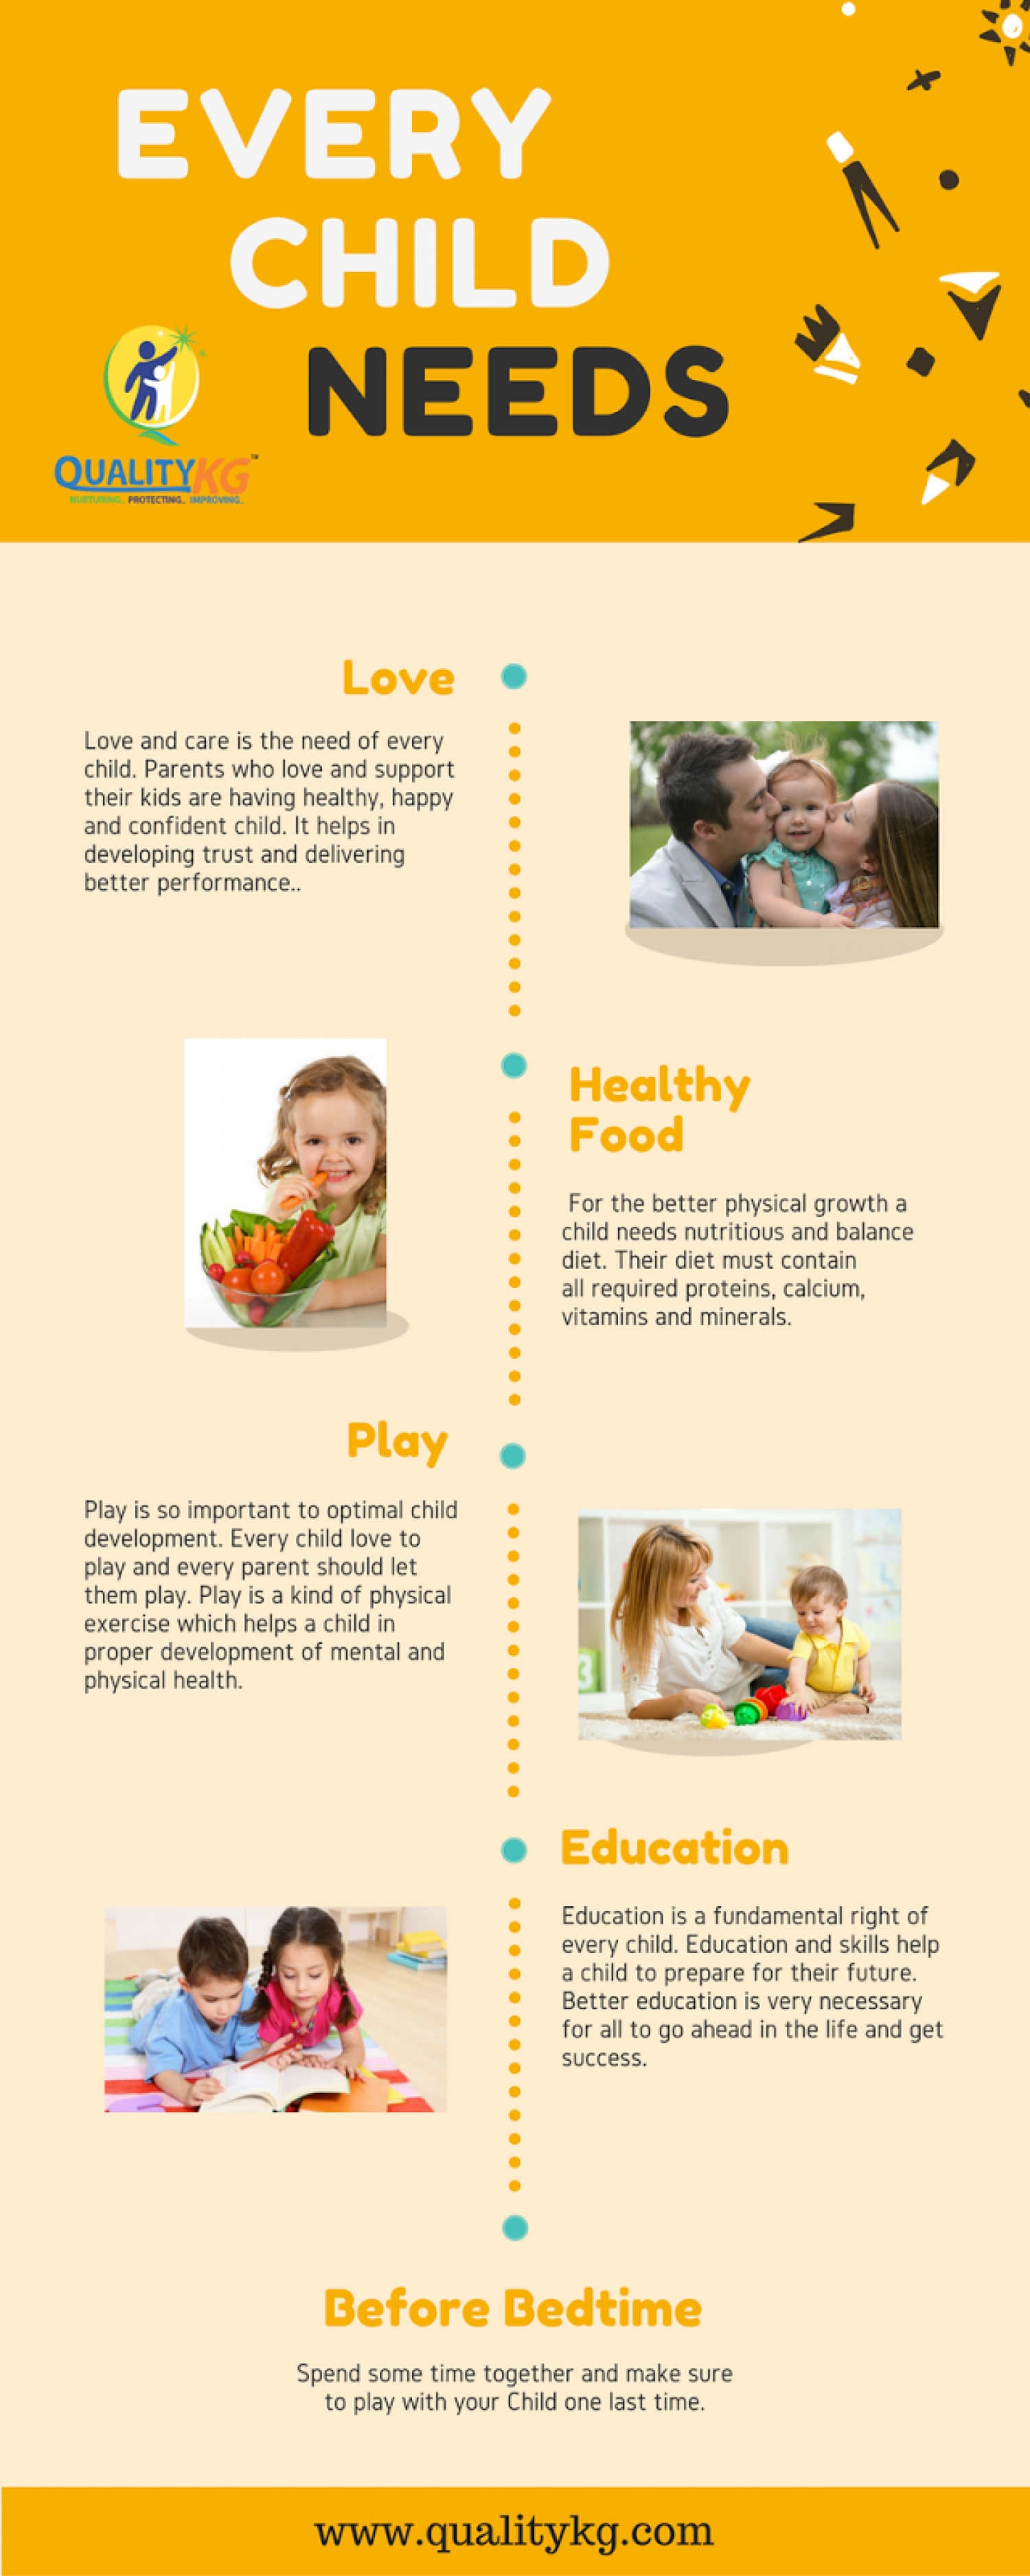 Things To Know About Early Childhood Parenting Tips! Infographic